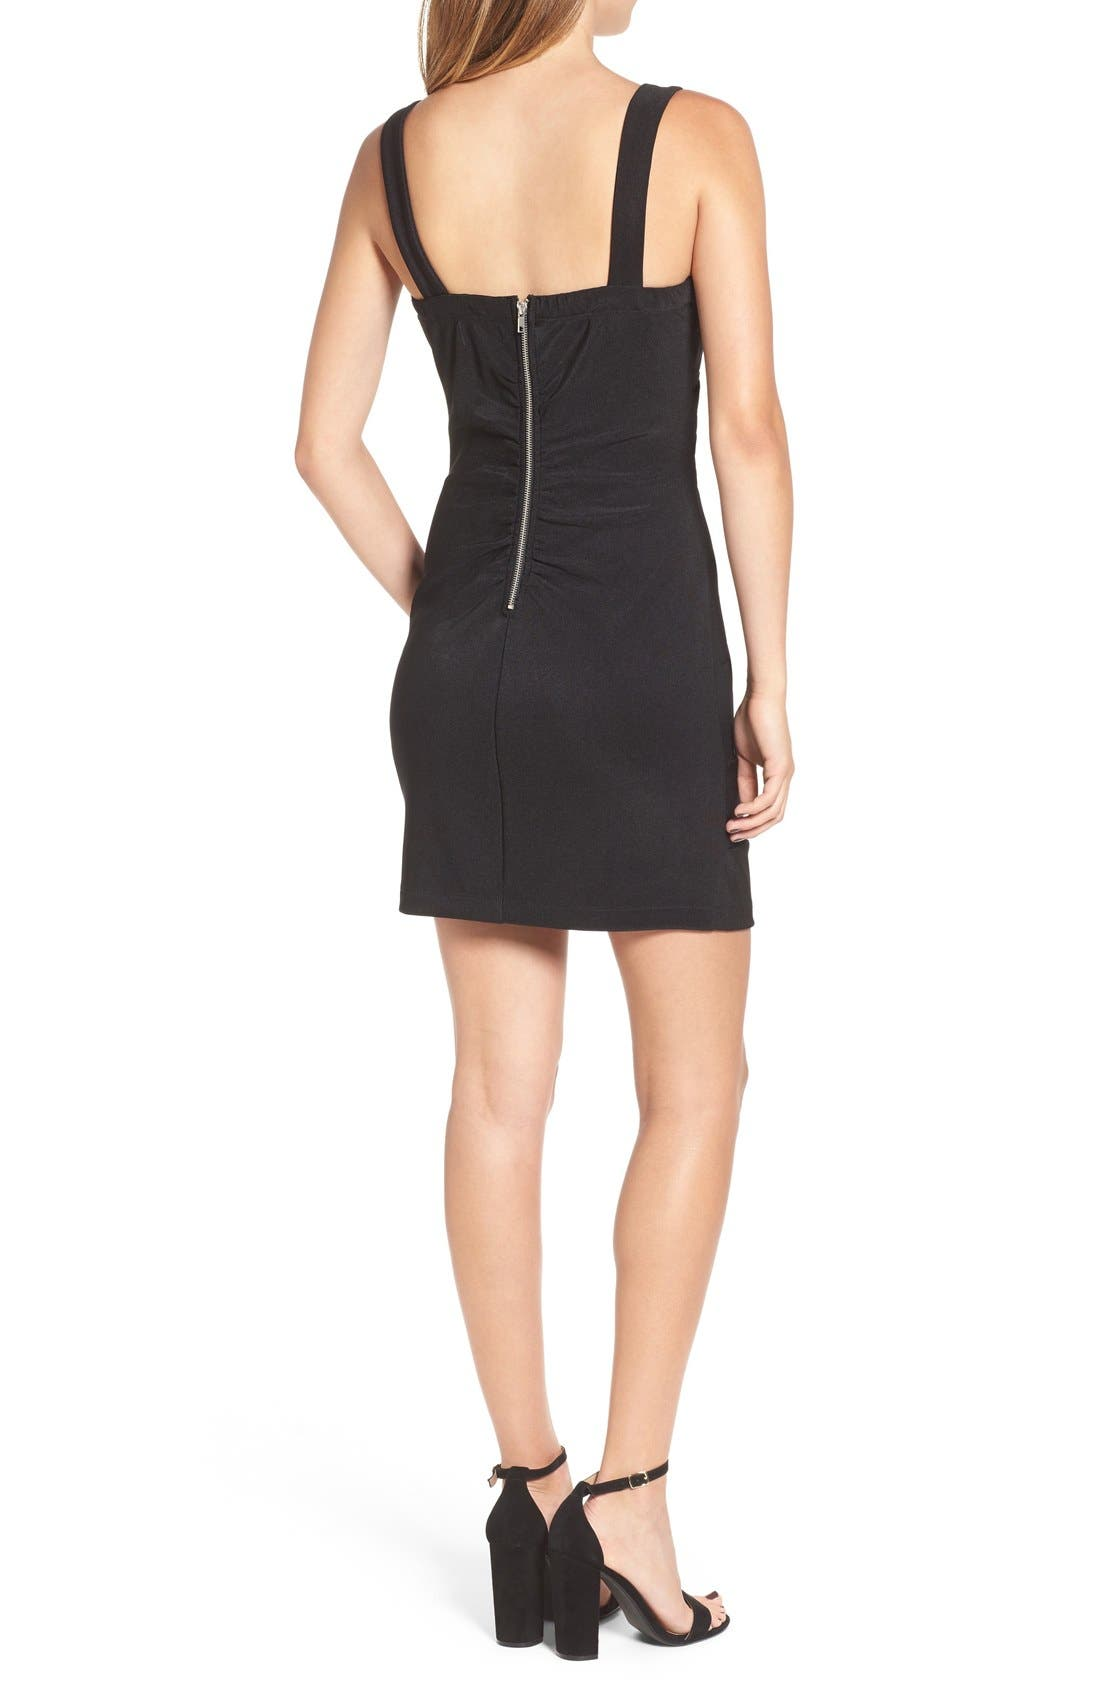 LOVE, NICKIE LEW,                             Cross Front Body-Con Dress,                             Alternate thumbnail 2, color,                             001